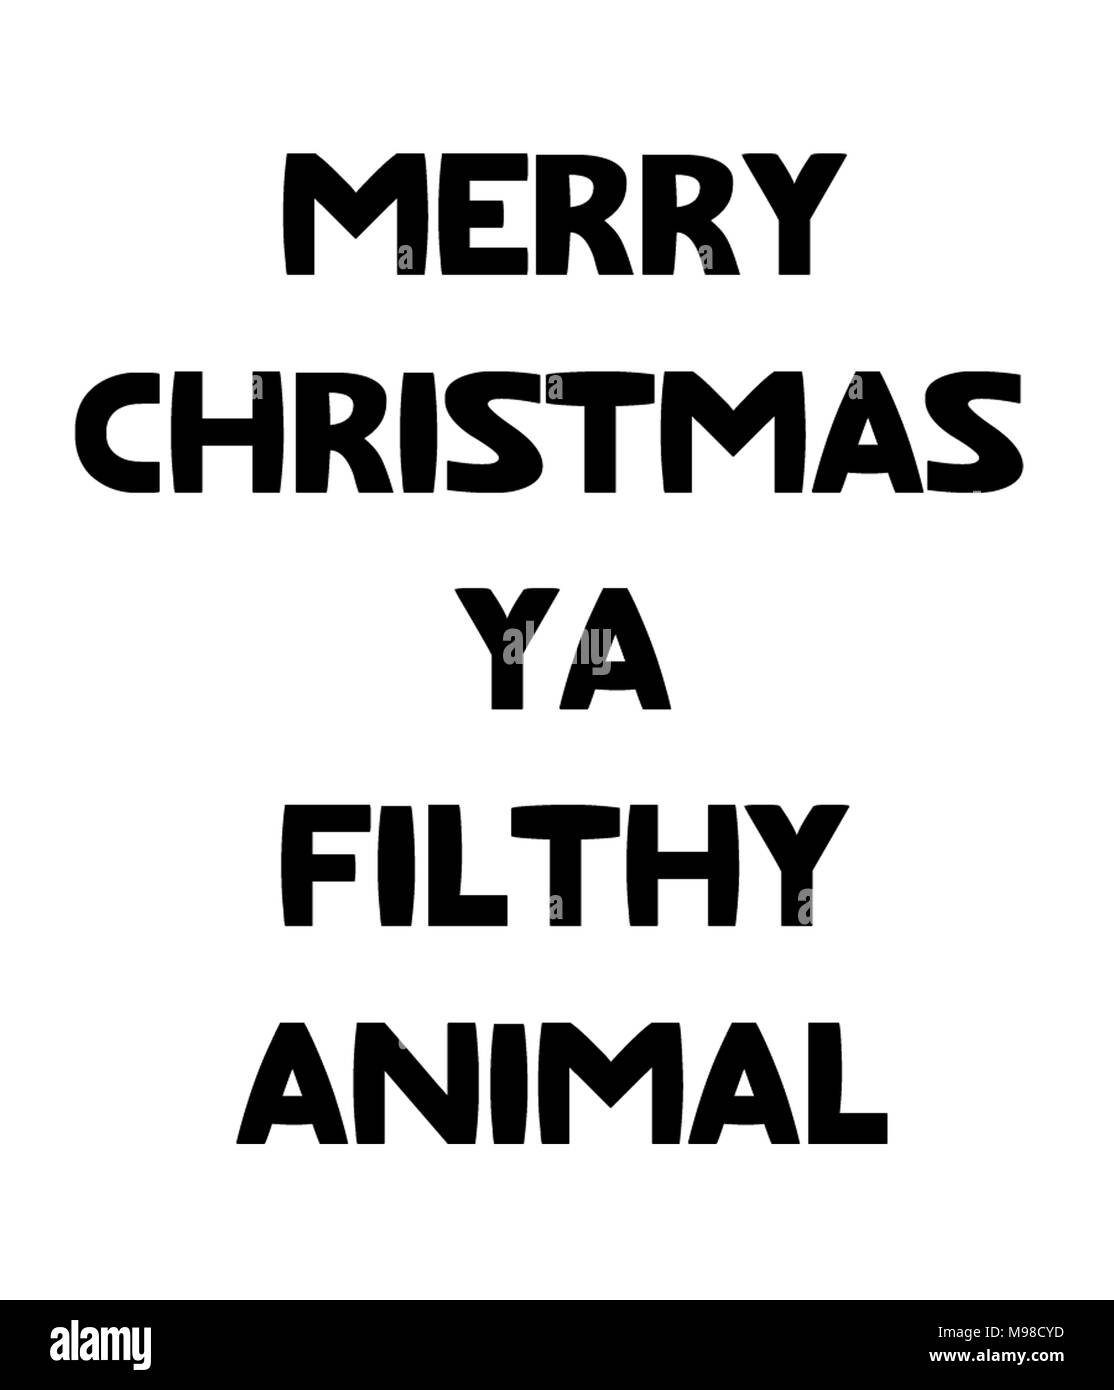 Merry Christmas Images Black And White.Merry Christmas Black And White Stock Photos Images Alamy